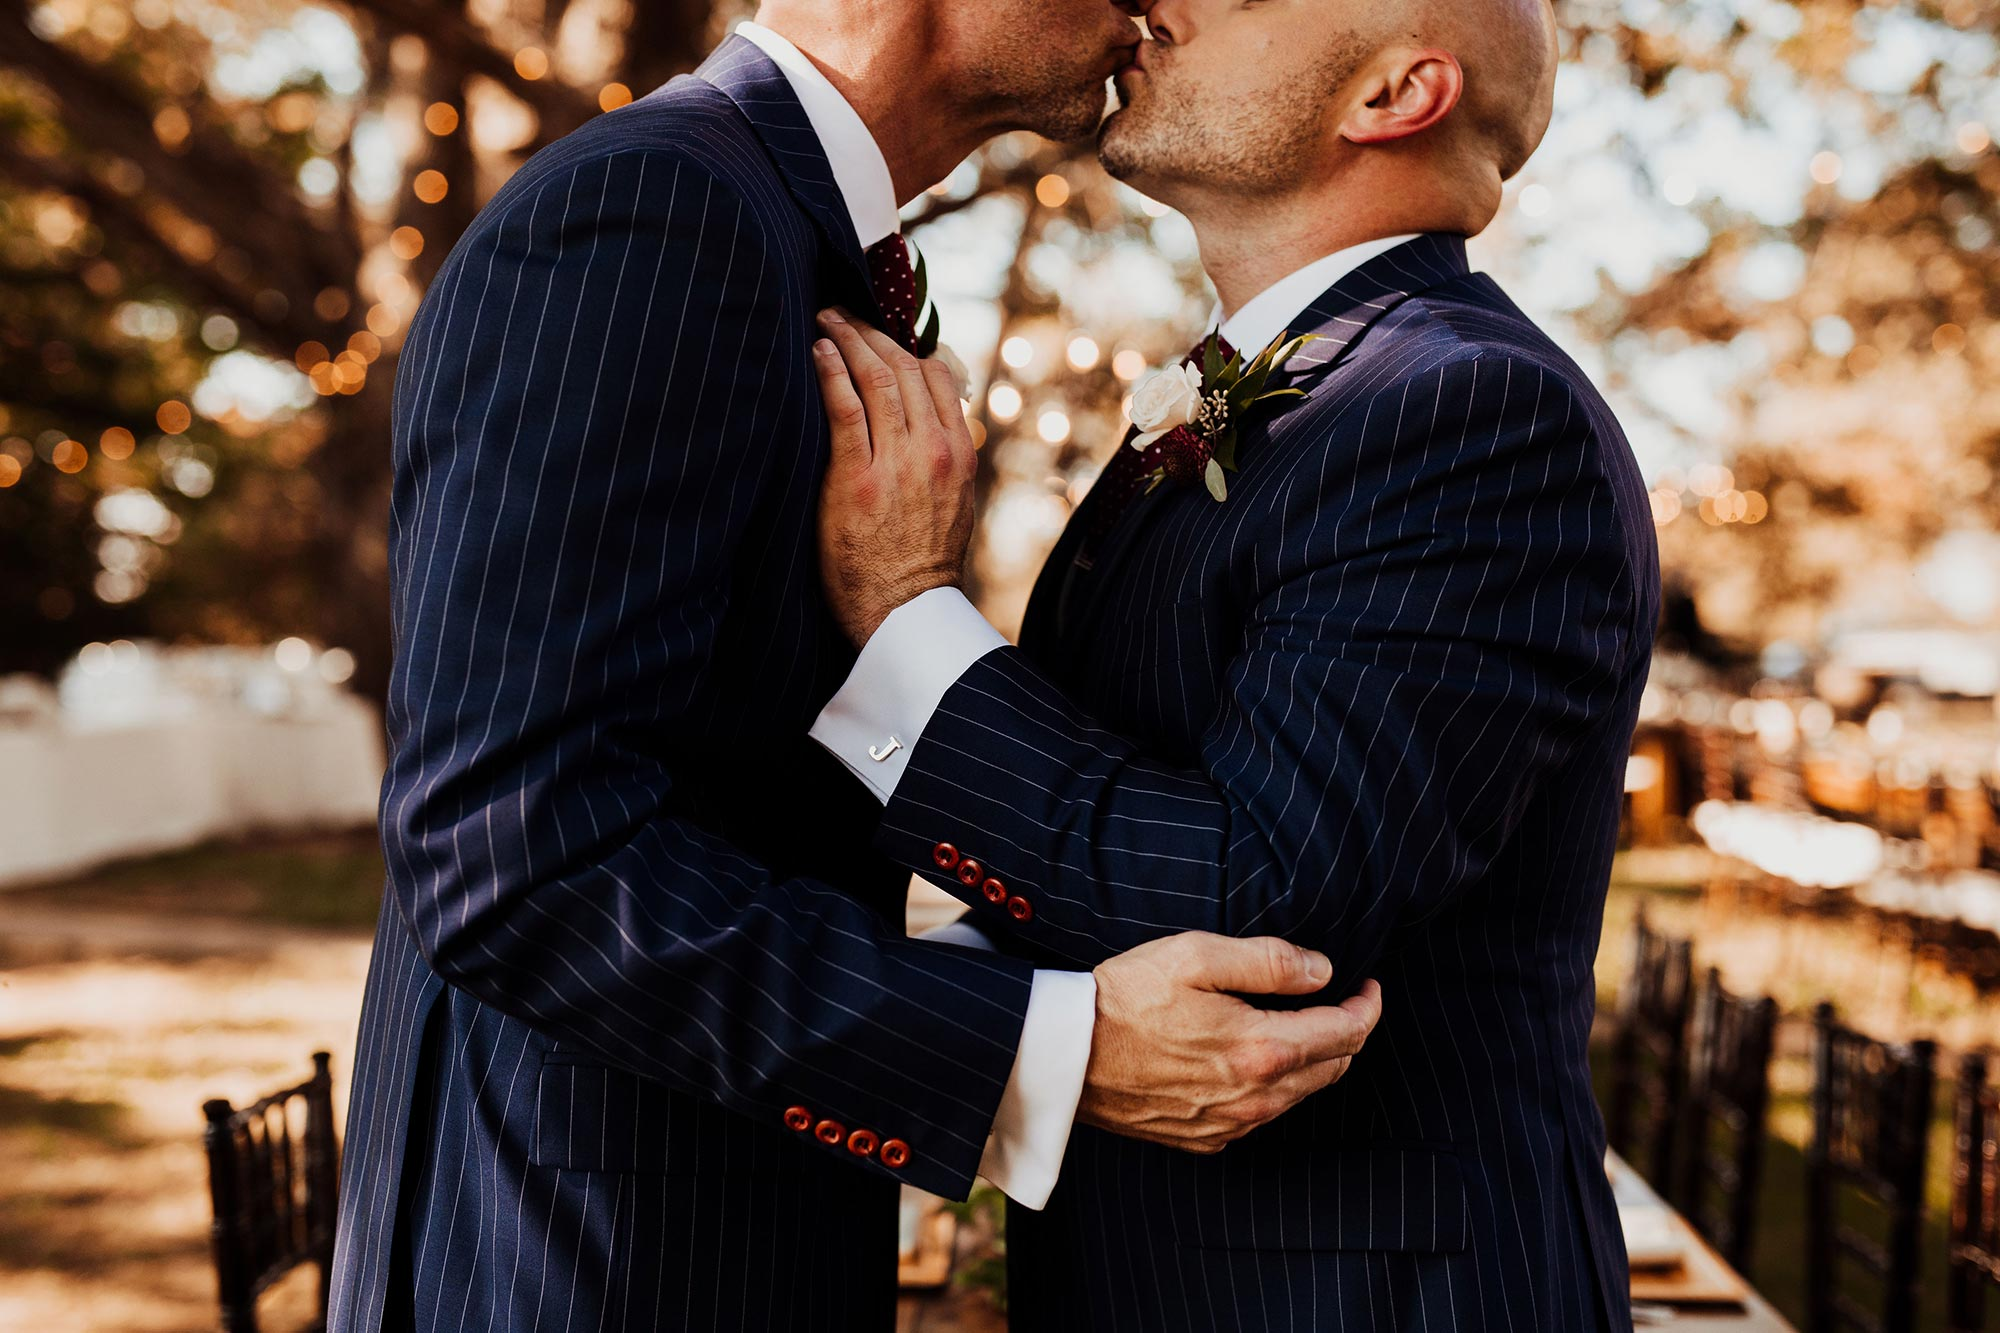 LGBTQ Louisville Kentucky Wedding at Hermitage Farm Crystal Ludwick Photo kiss outside